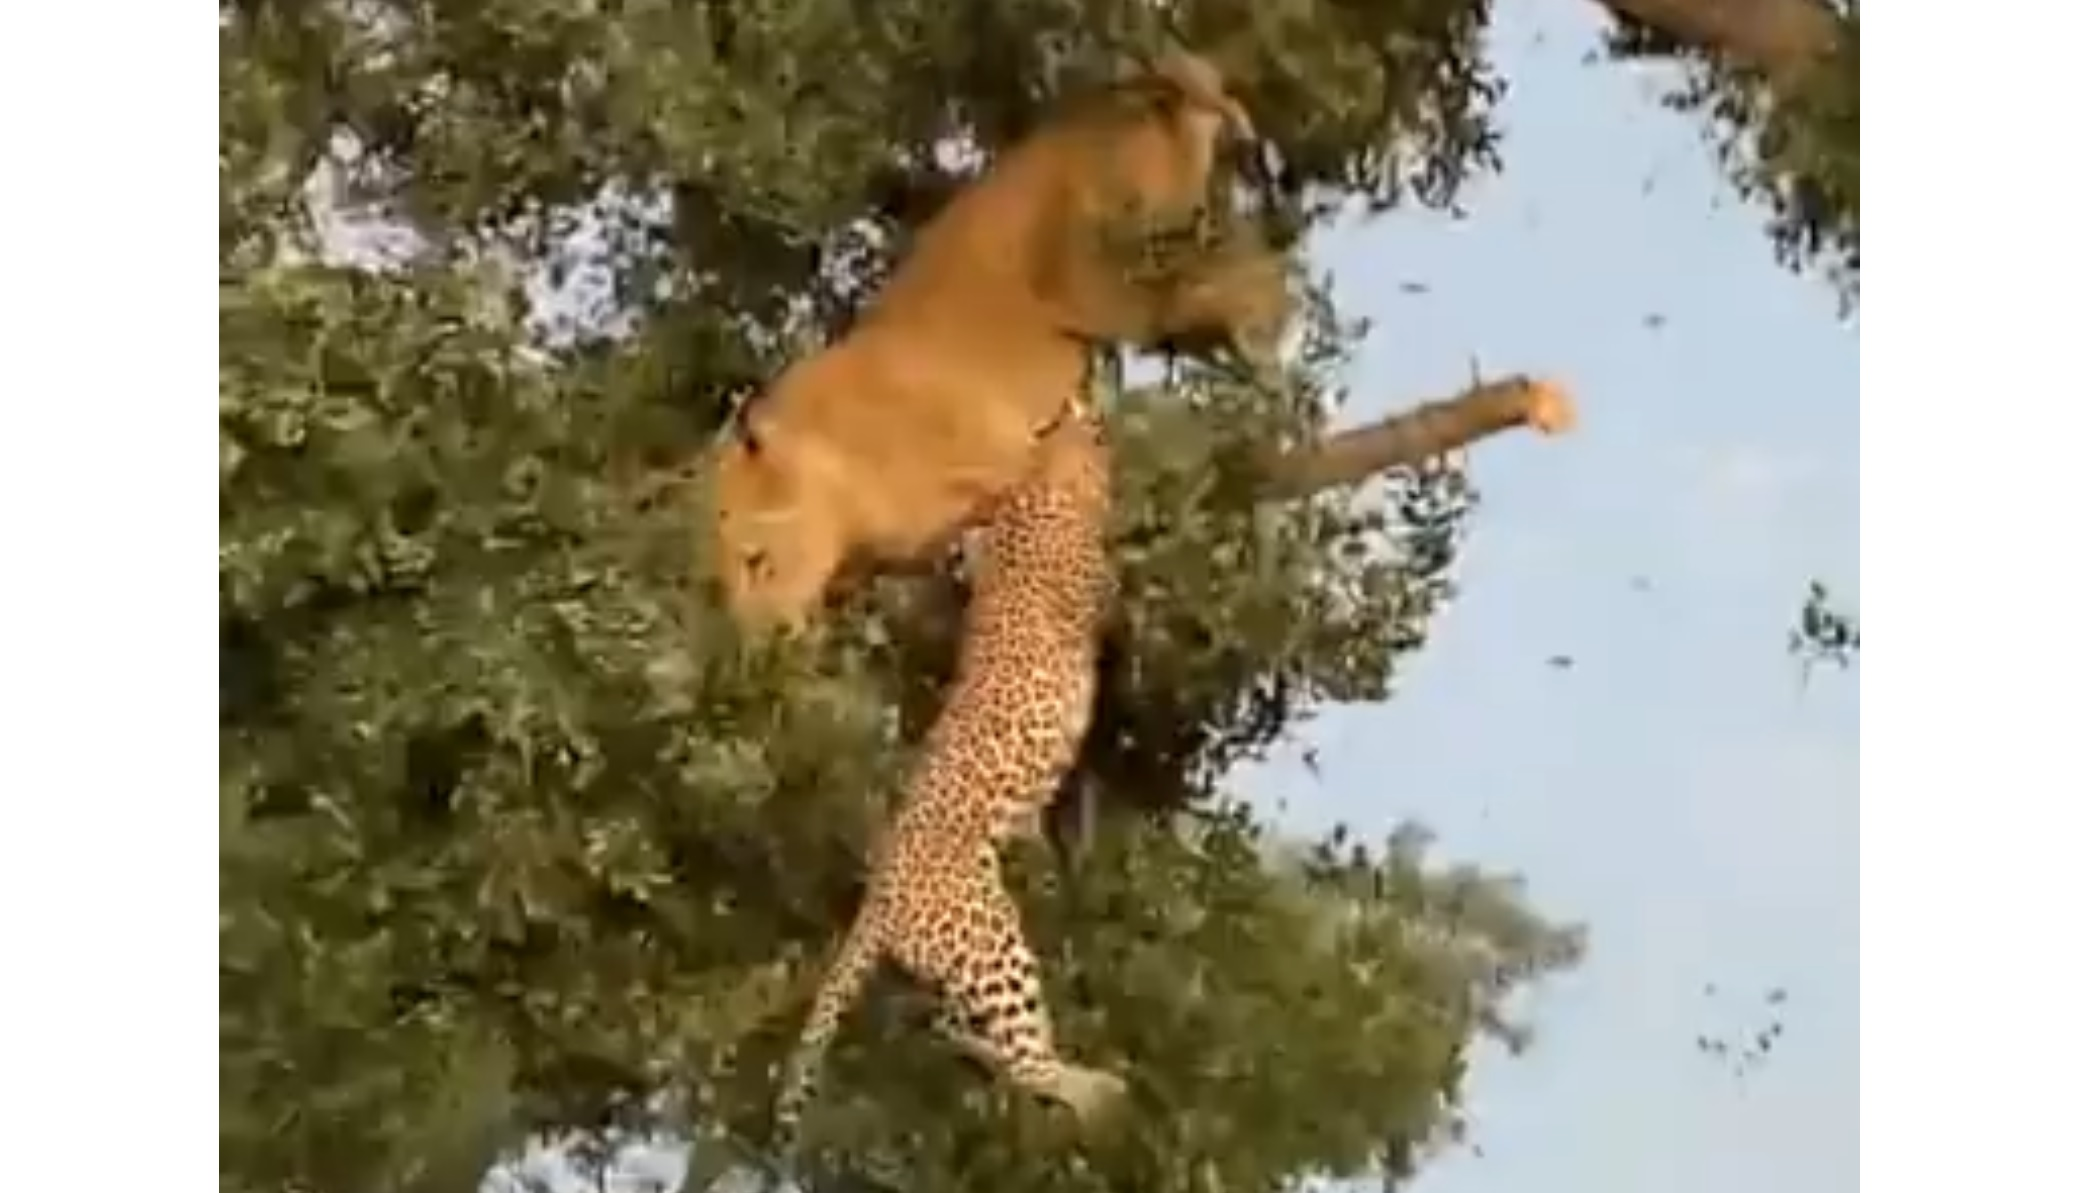 Leopard & Lion Fight For Food In The Tree